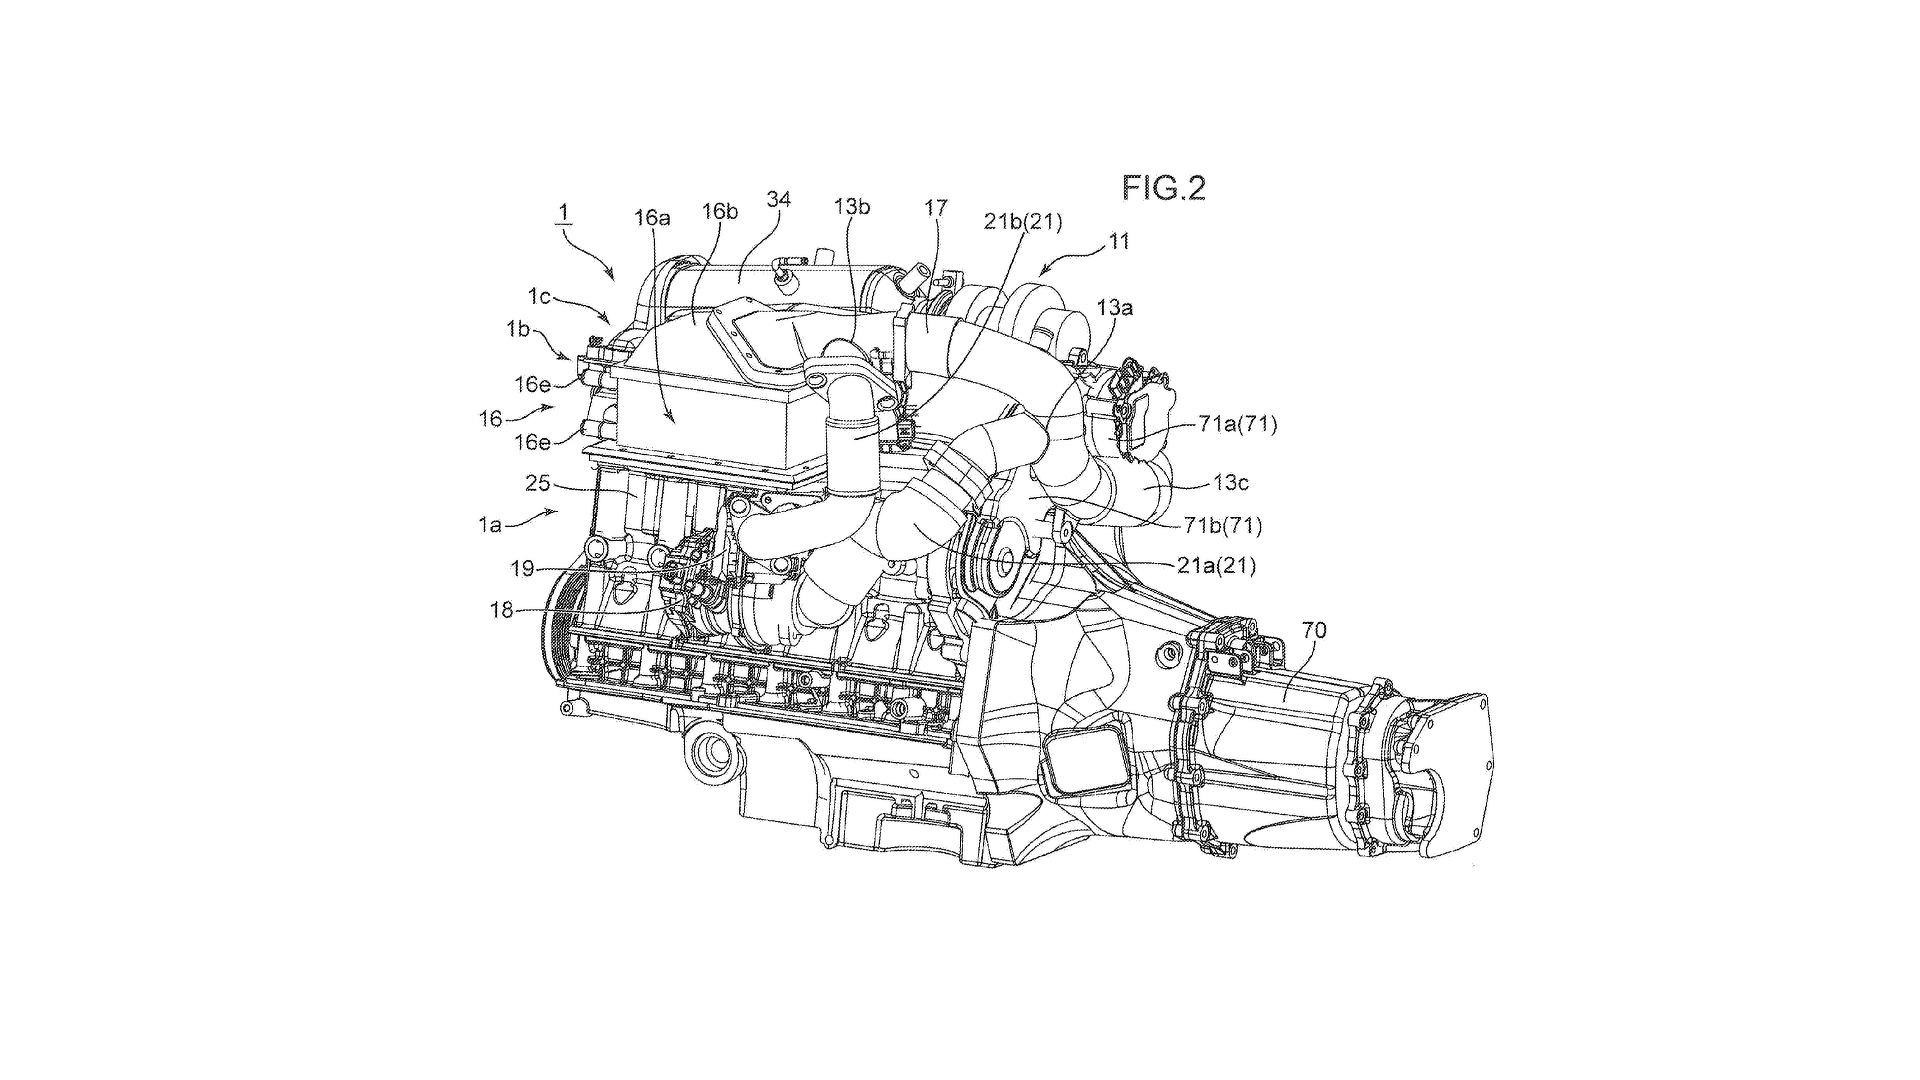 Mazda Patents Twin Turbo Electric Supercharger Engine